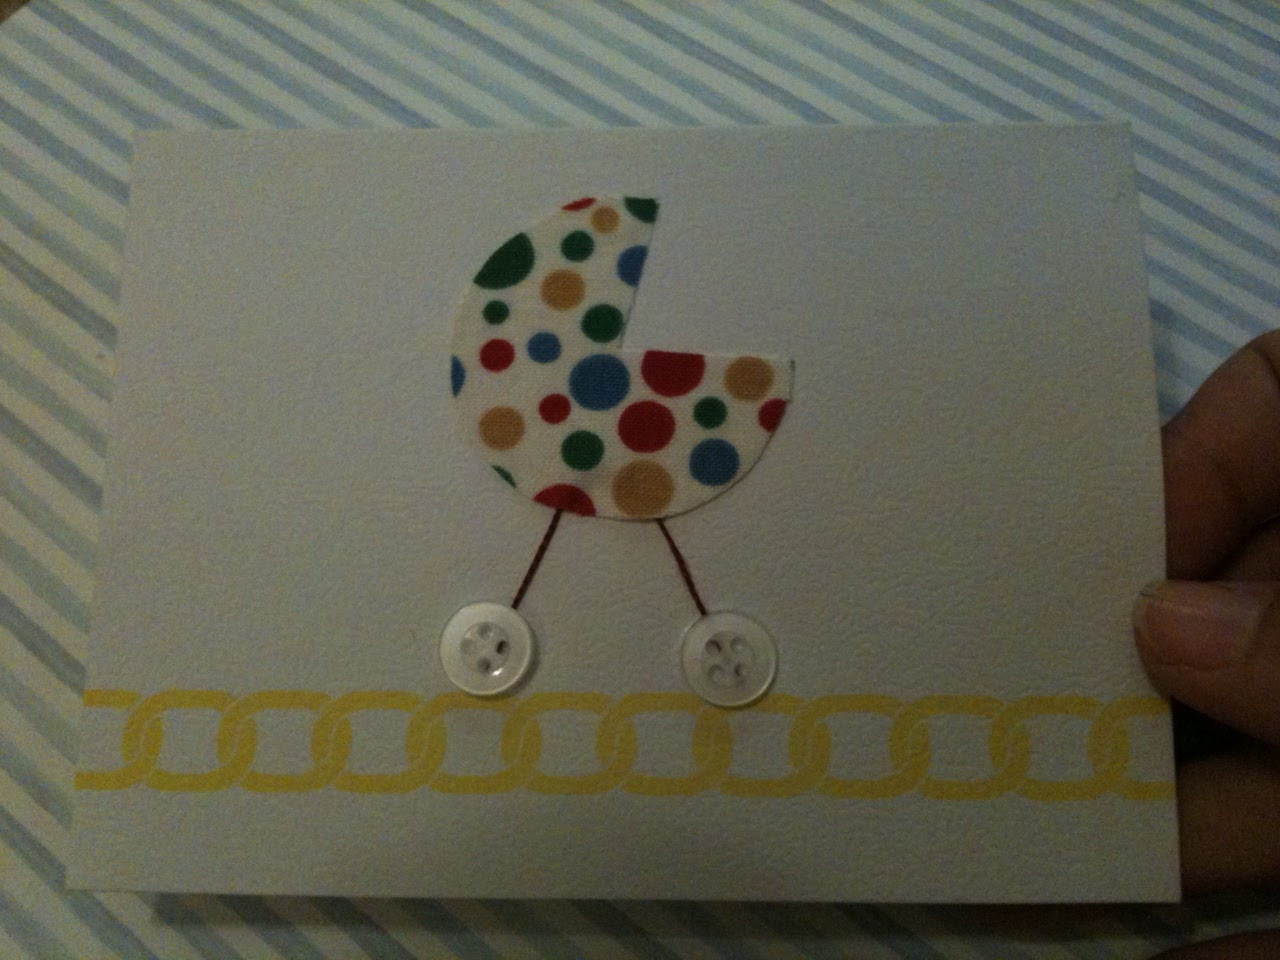 Best ideas about DIY Baby Shower Card . Save or Pin Glitter Glue GLAM DIY Baby Shower Card Now.